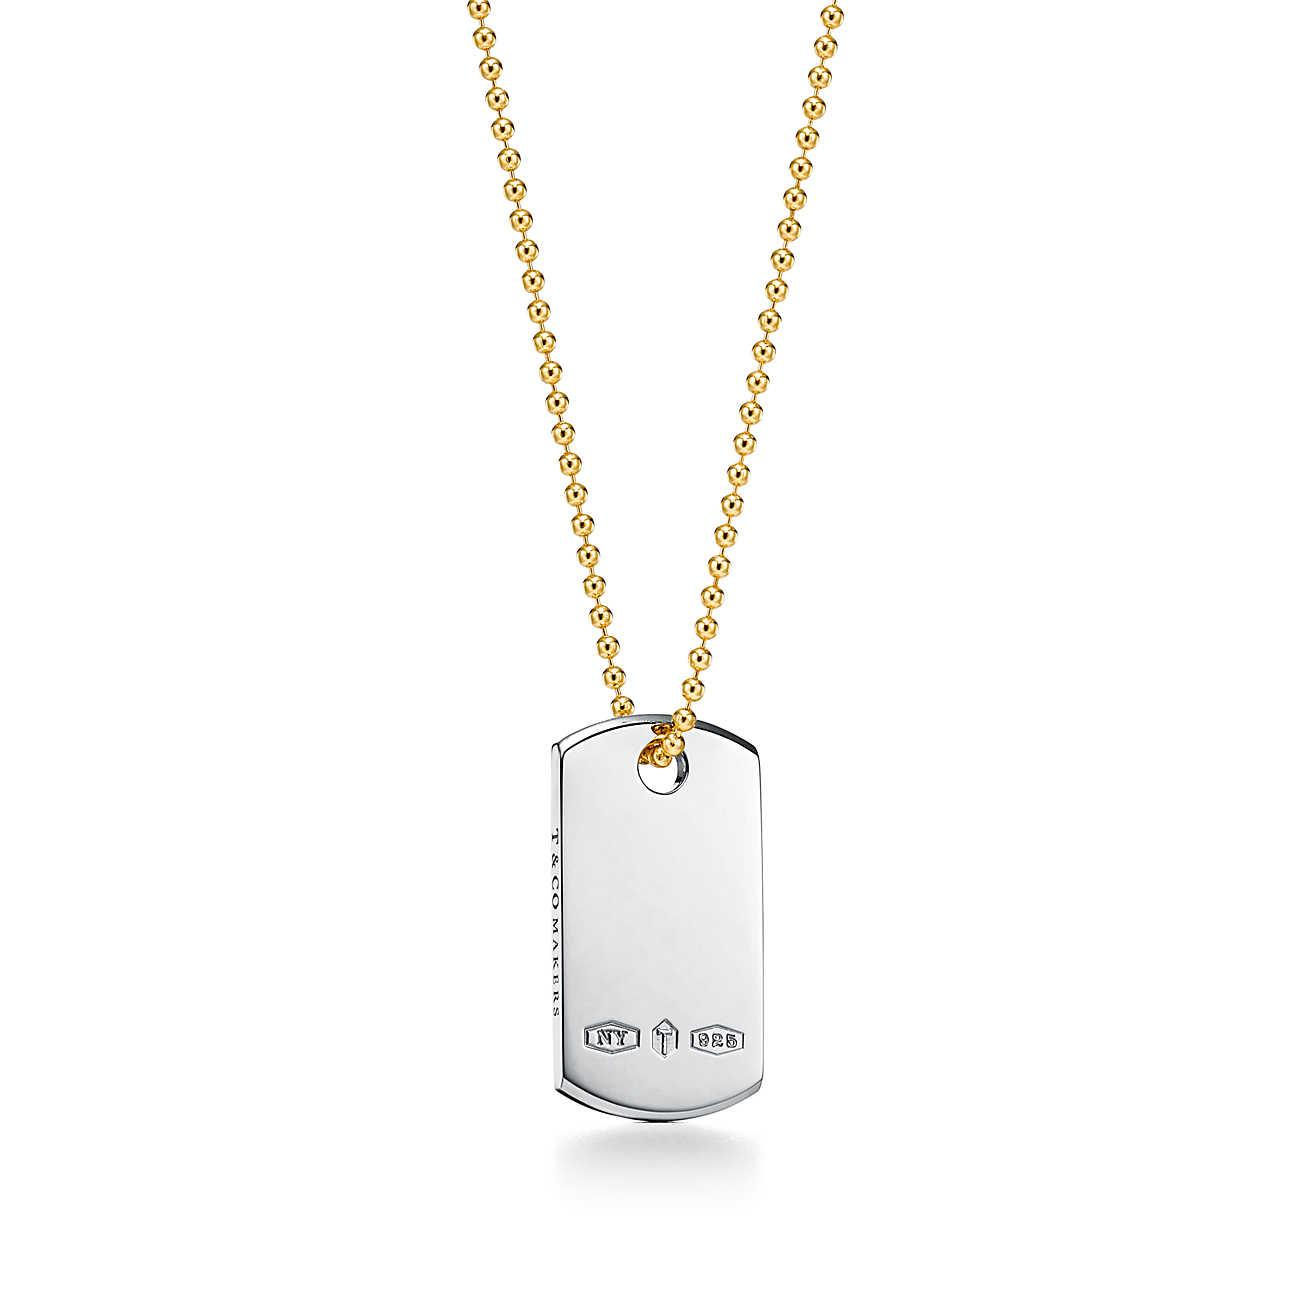 Tiffany 1837® Makers ID tag pendant in sterling silver and 18k gold, 24